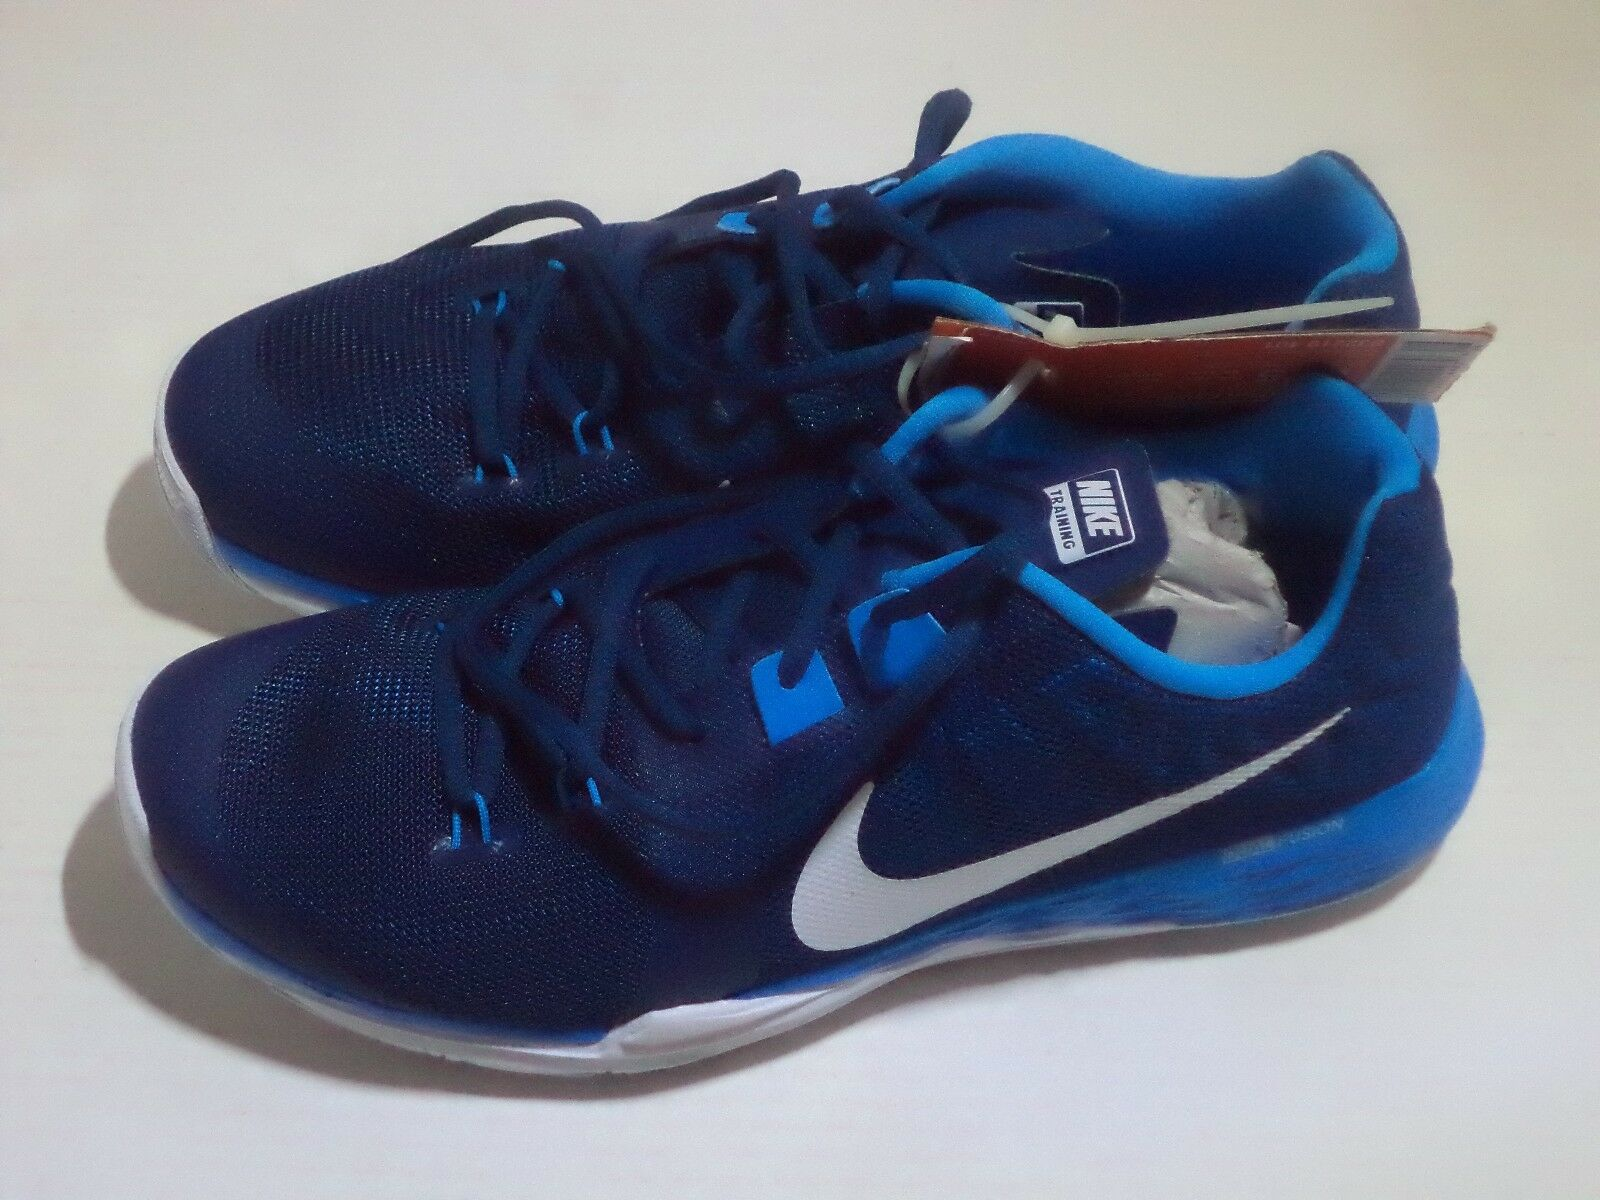 NIKE Uomo Train Prime Iron DF Cross Cross Cross Trainer scarpe Size